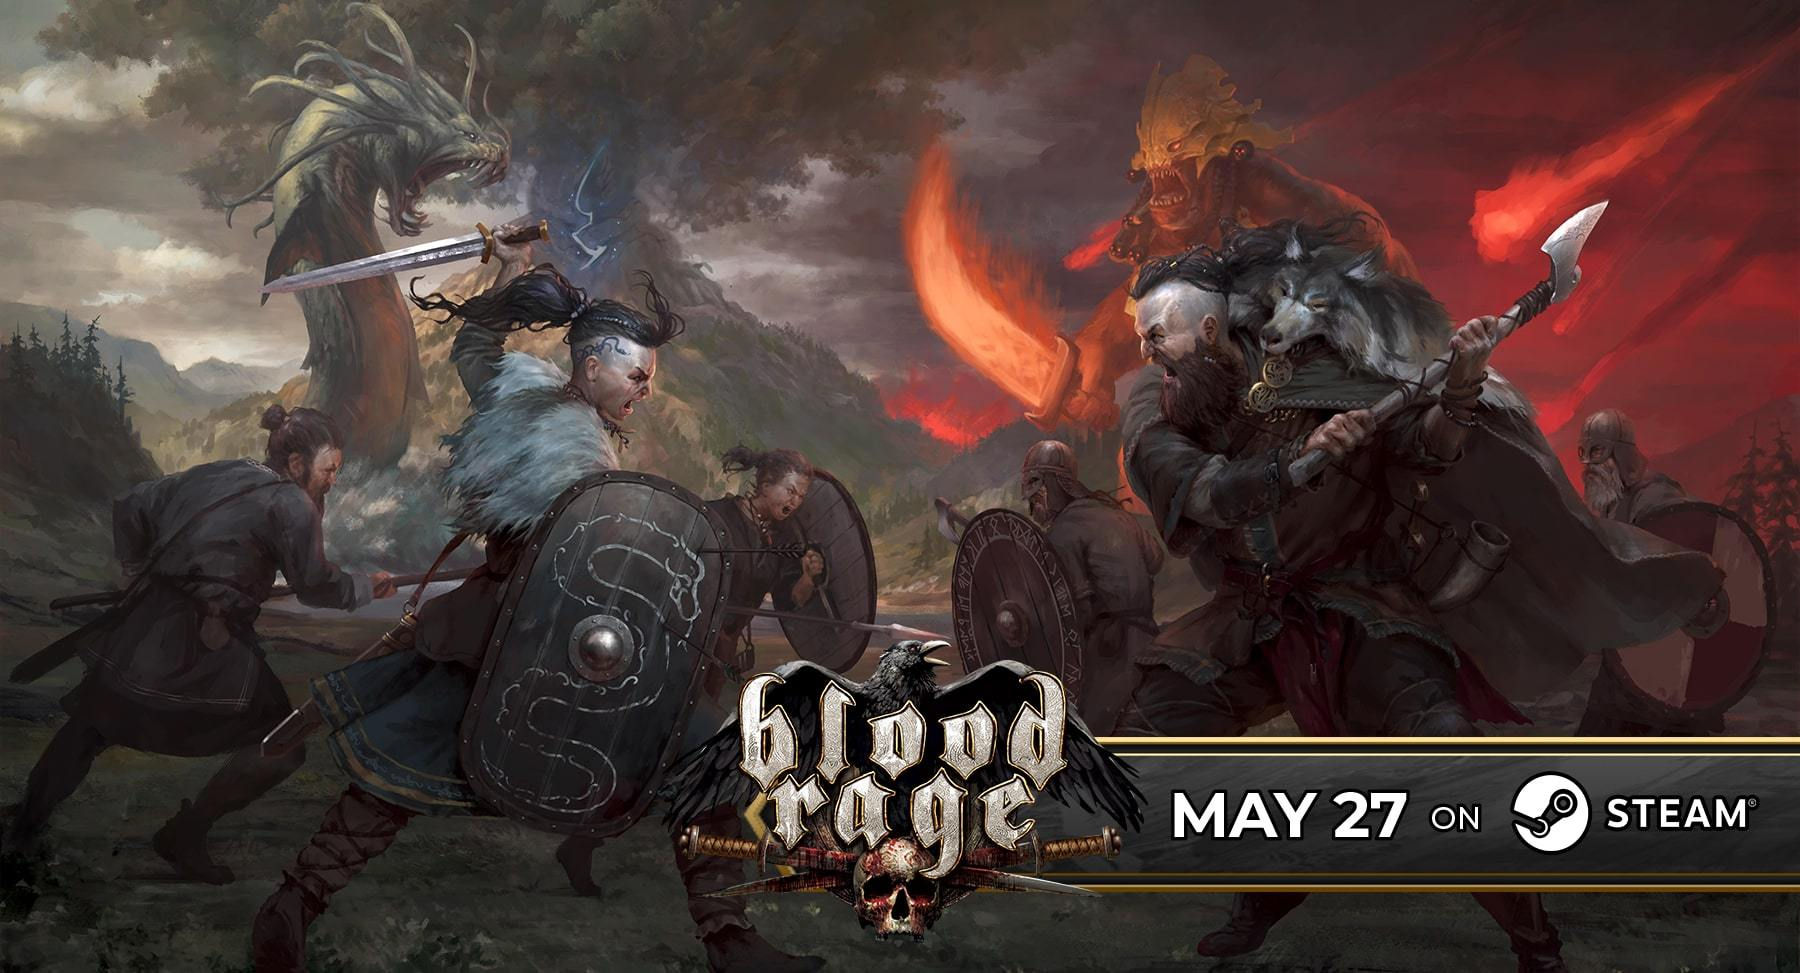 Blood Rage May 27 on Steam